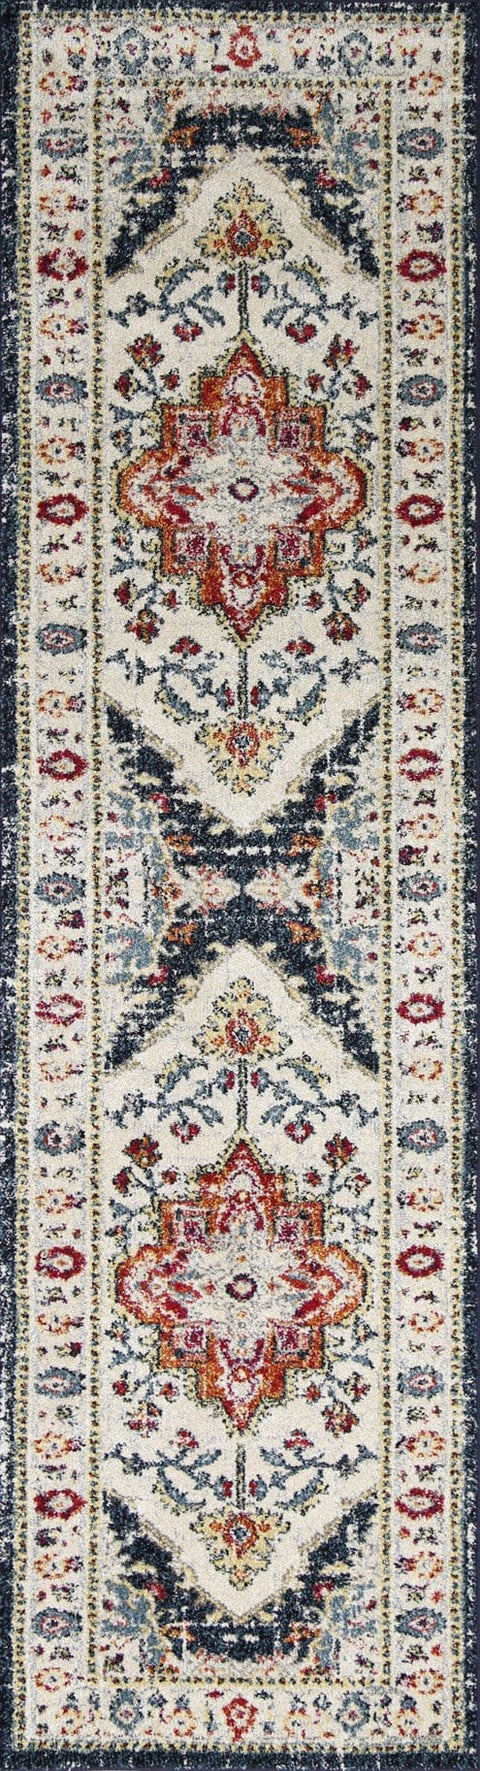 Rama Black Ivory and Navy Distressed Transitional Runner Rug